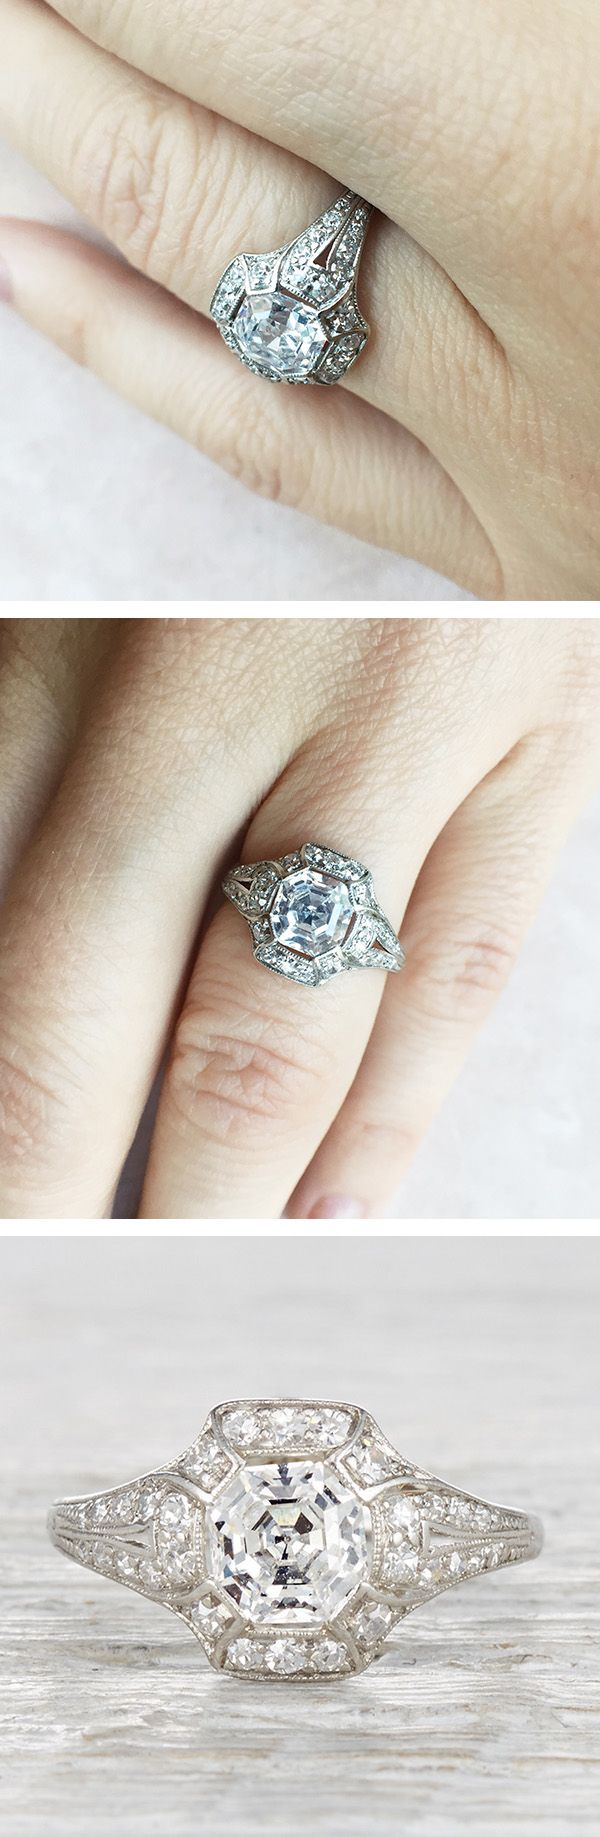 engagement wedding rings wedding ring best images about Engagement Wedding Rings on Pinterest Antiques Diamonds and Deco engagement ring